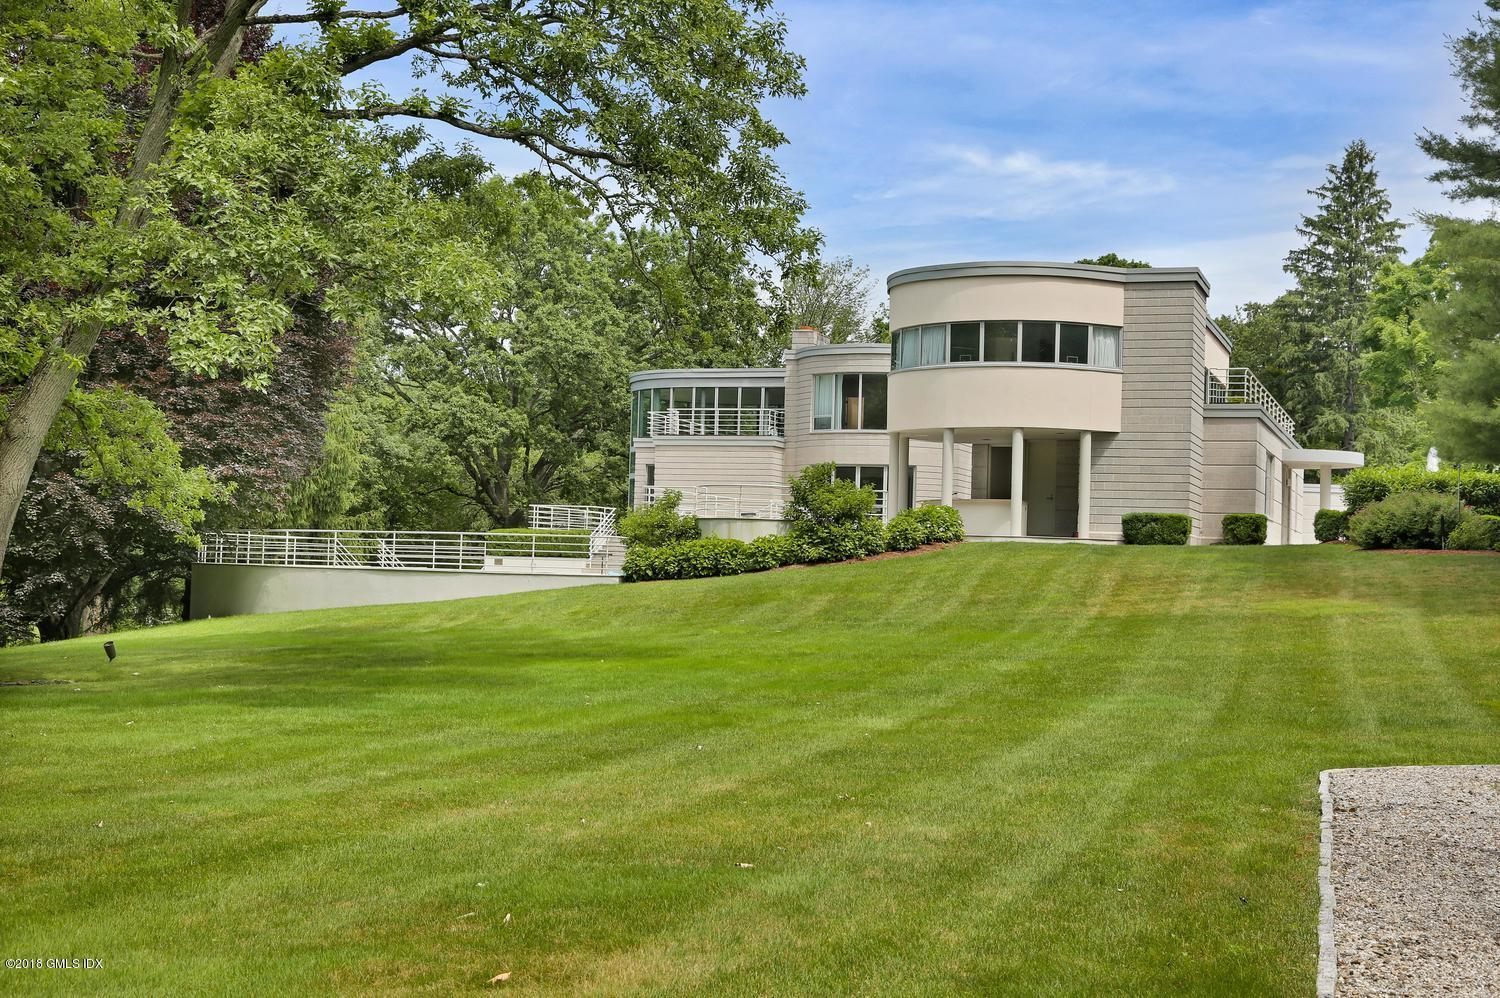 66 Cherry Valley Road, Greenwich, CT 06831